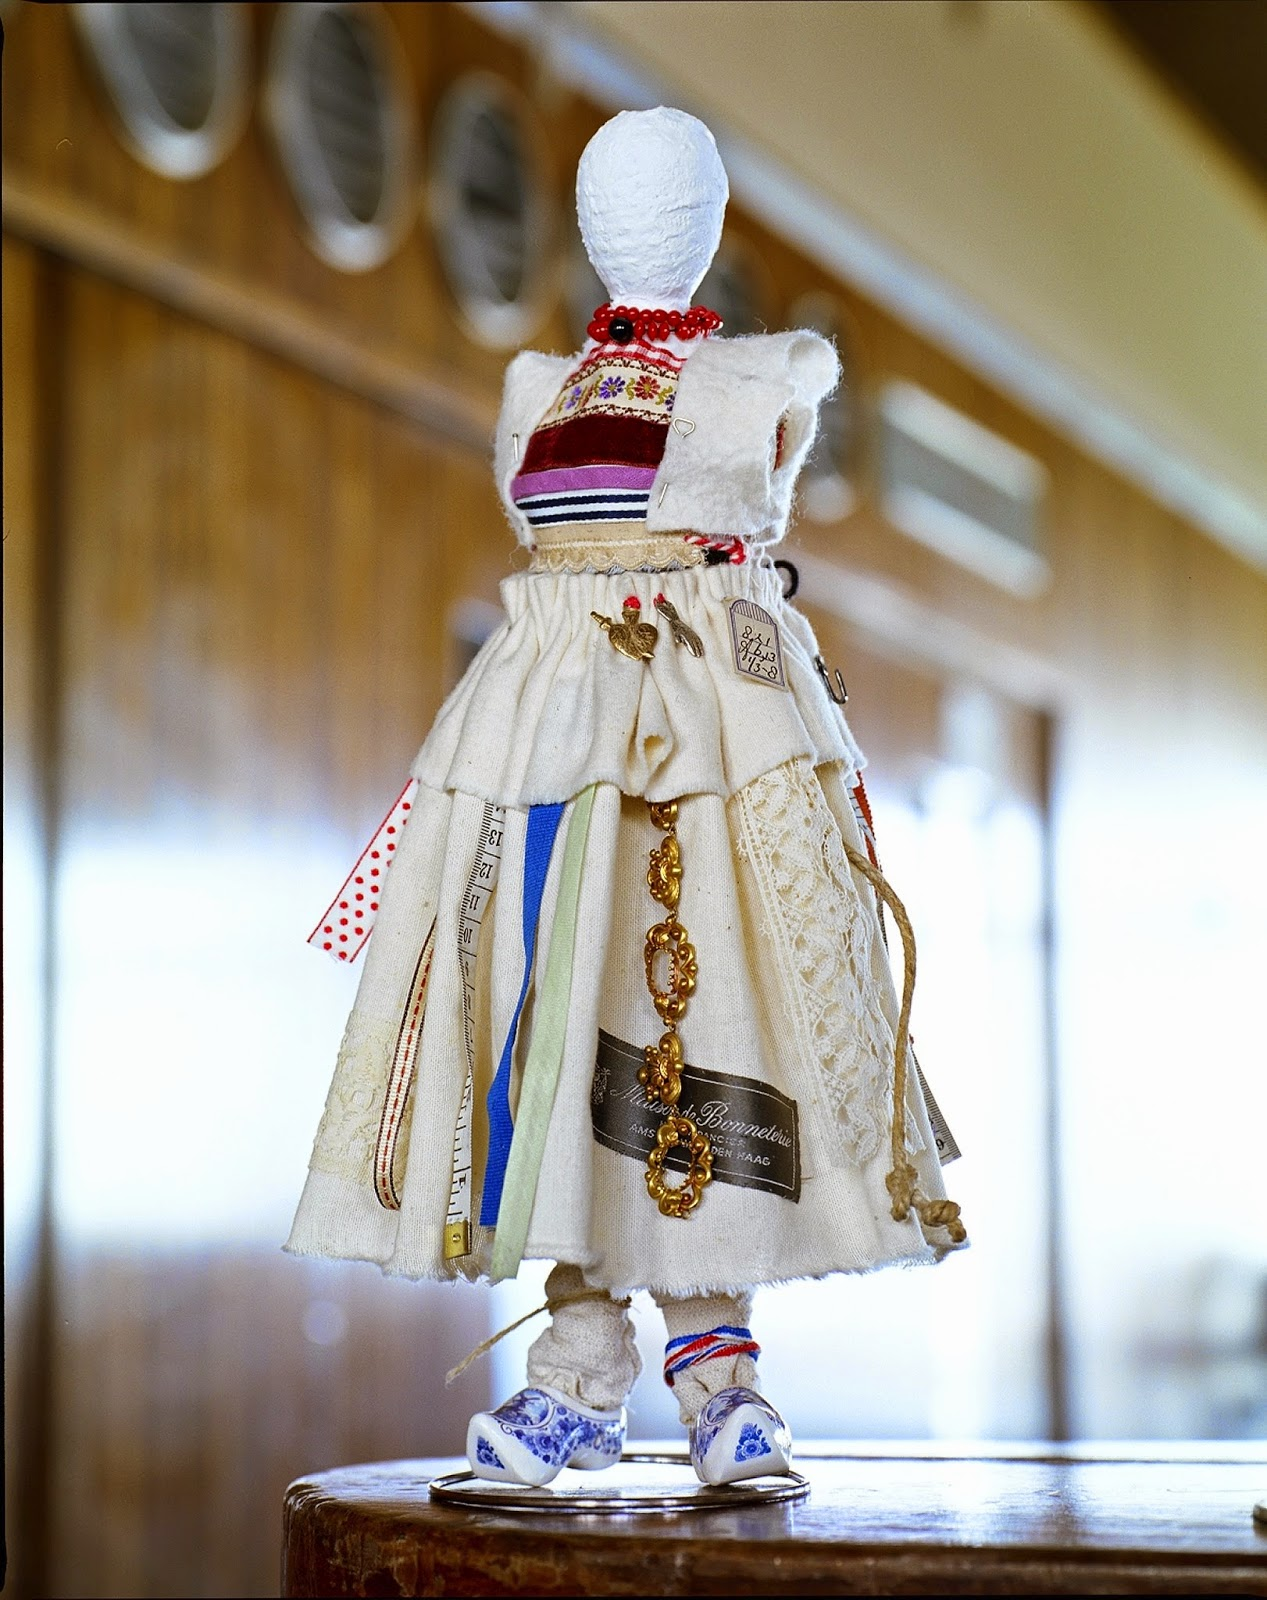 The Dolly © Concrete Collaborations, Concrete Editions, Sally Dyer, De La Warr Pavilion, avant garde dolls, artisan, handmade, national costume, Dutch national costume, clogs, bricolage,